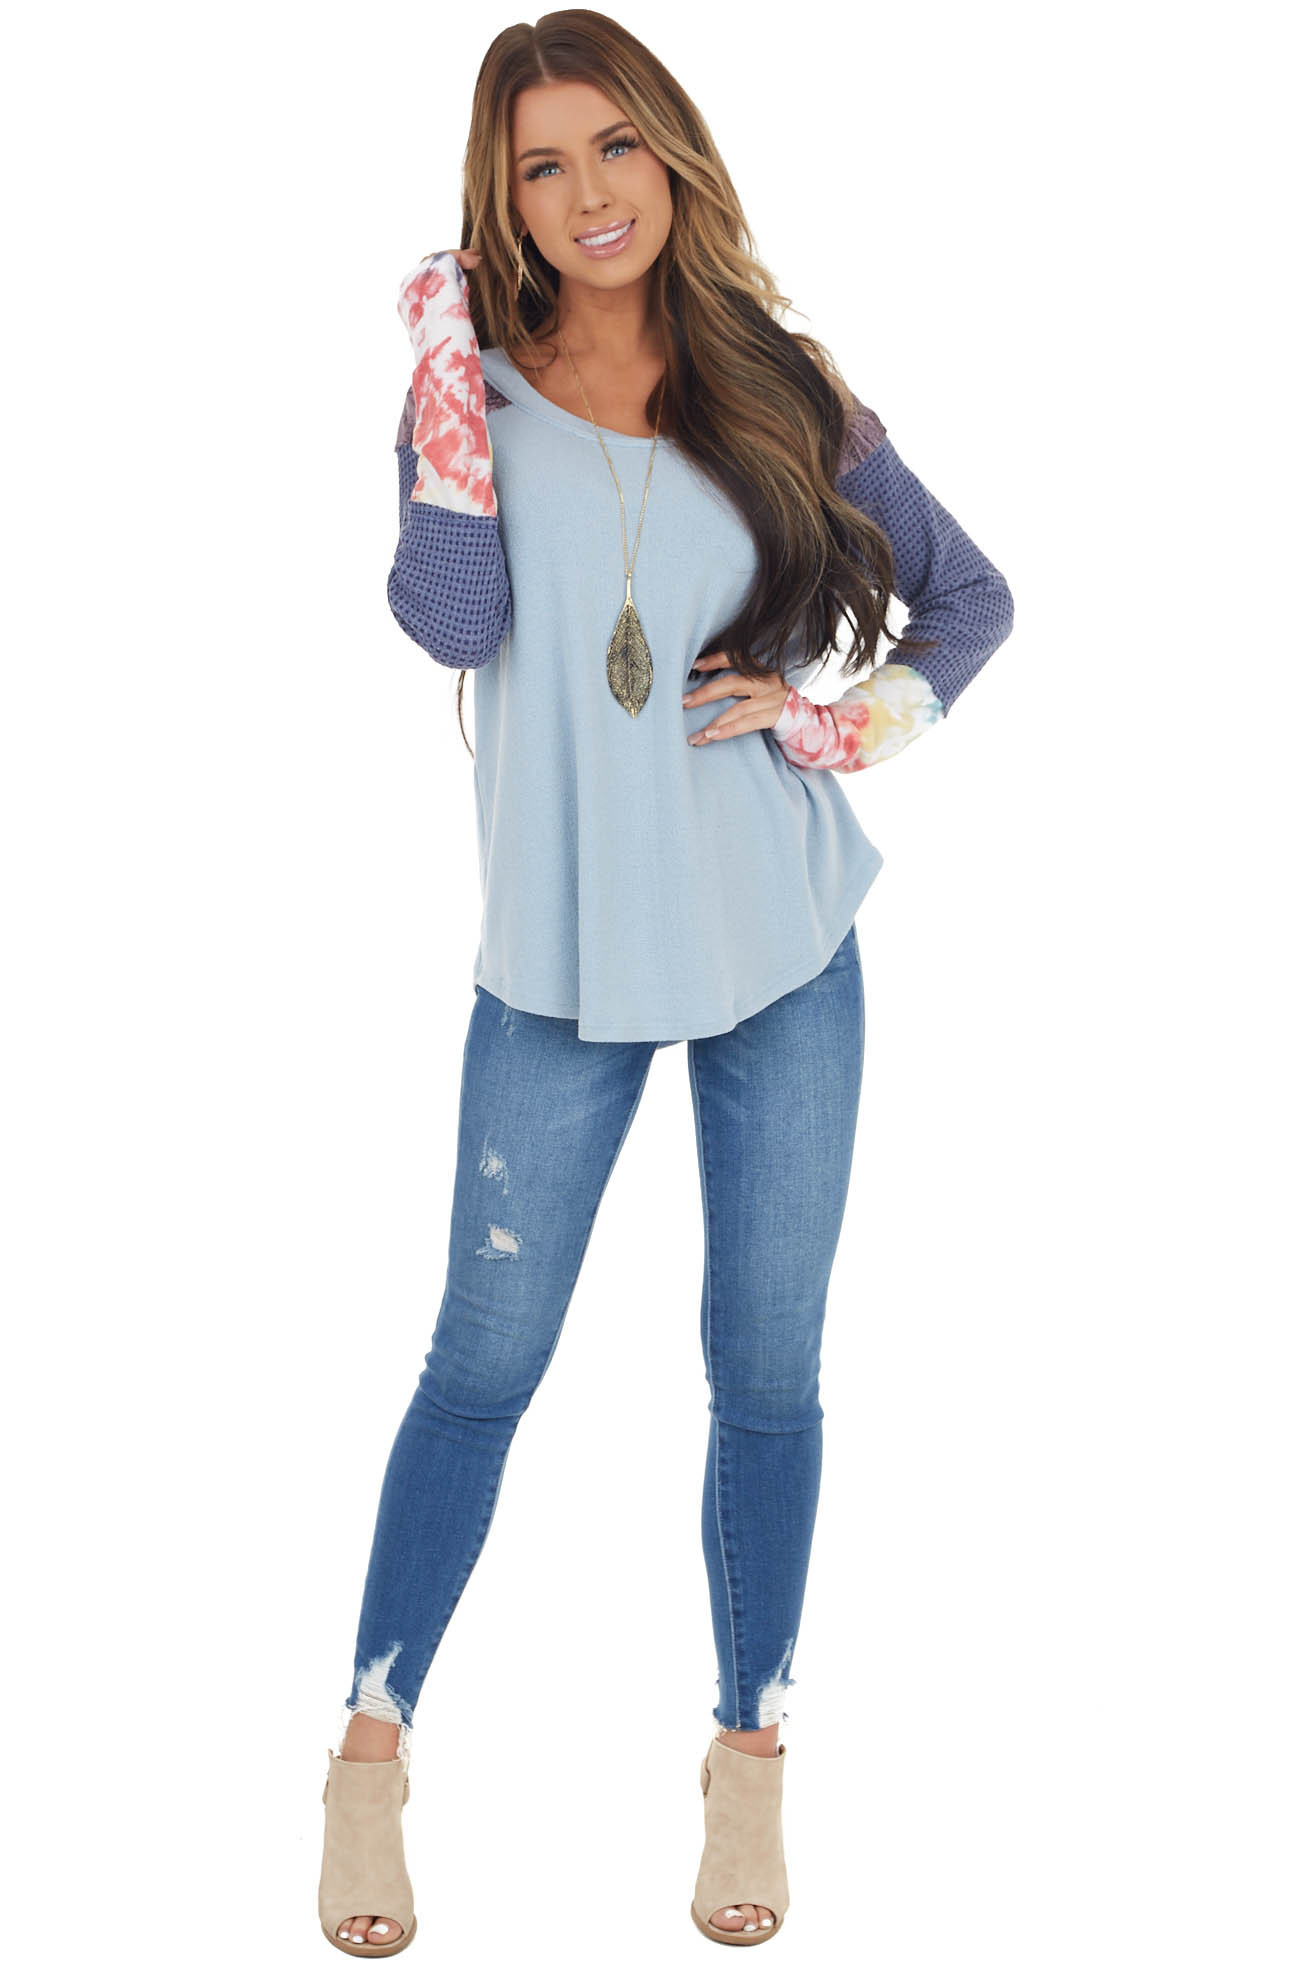 Dusty Blue Knit Top with Long Multiprint Sleeves